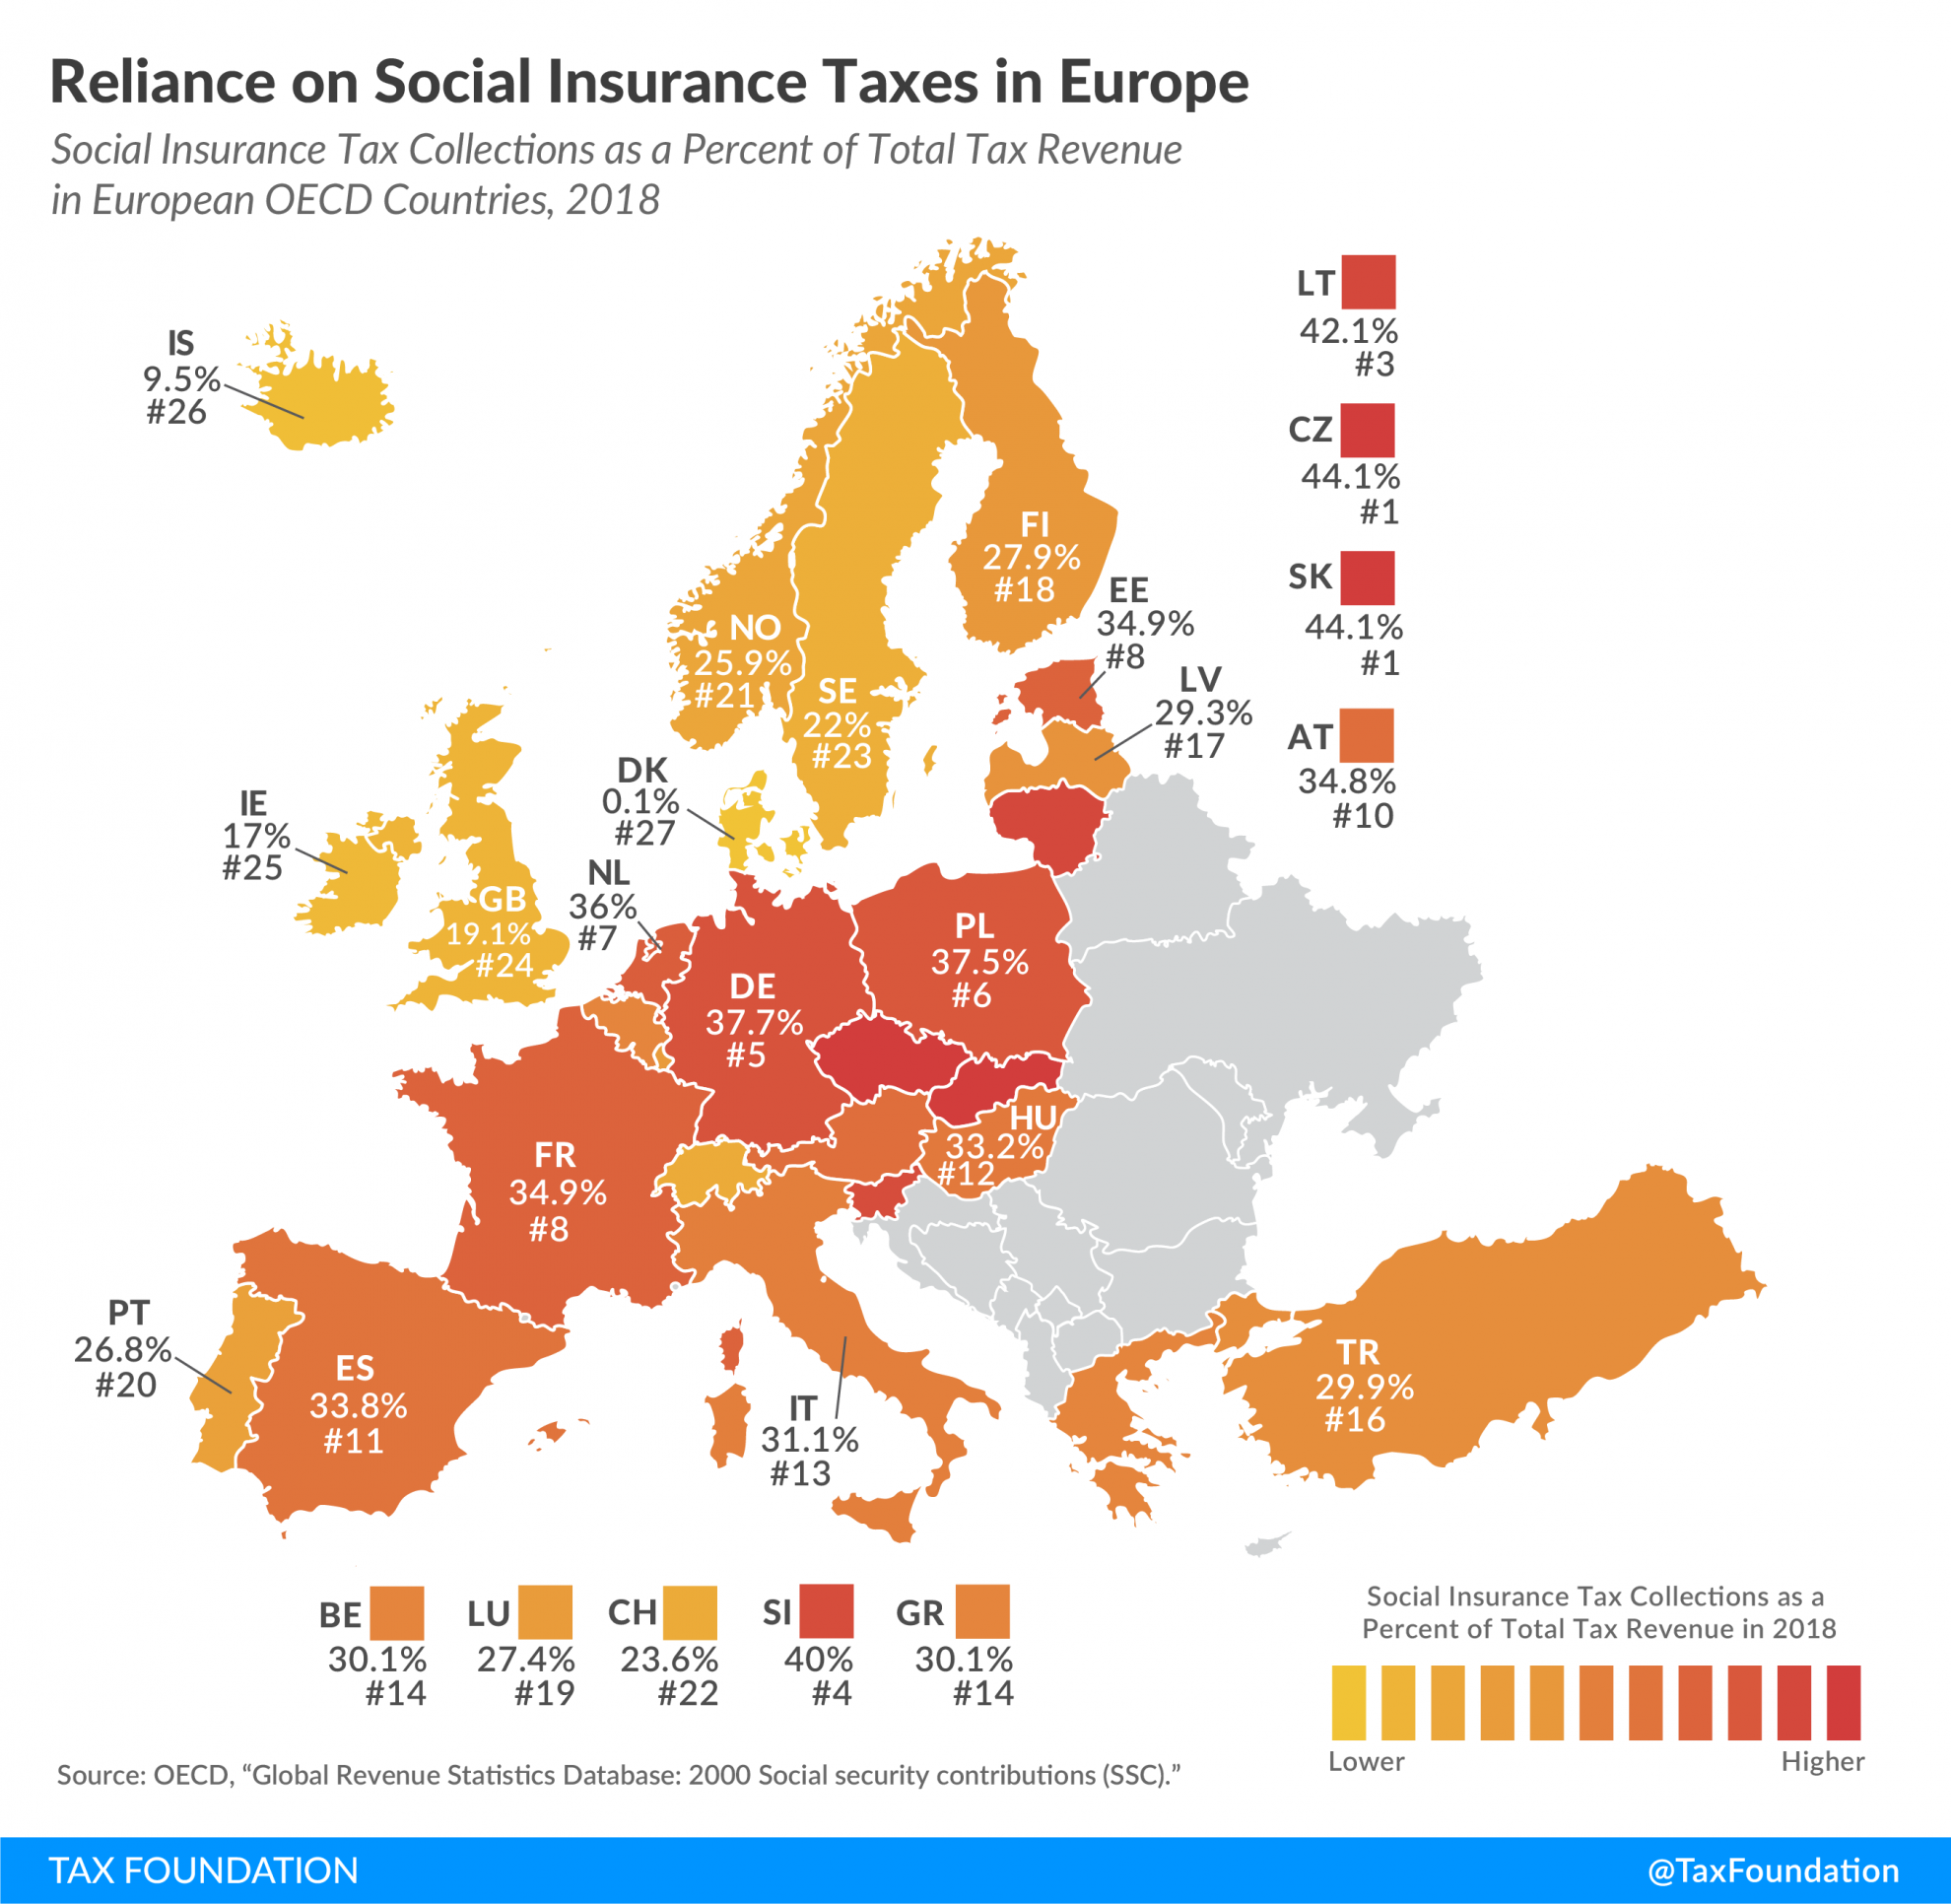 Reliance on social insurance tax revenue in Europe, Revenue from Social Security contributions in Europe